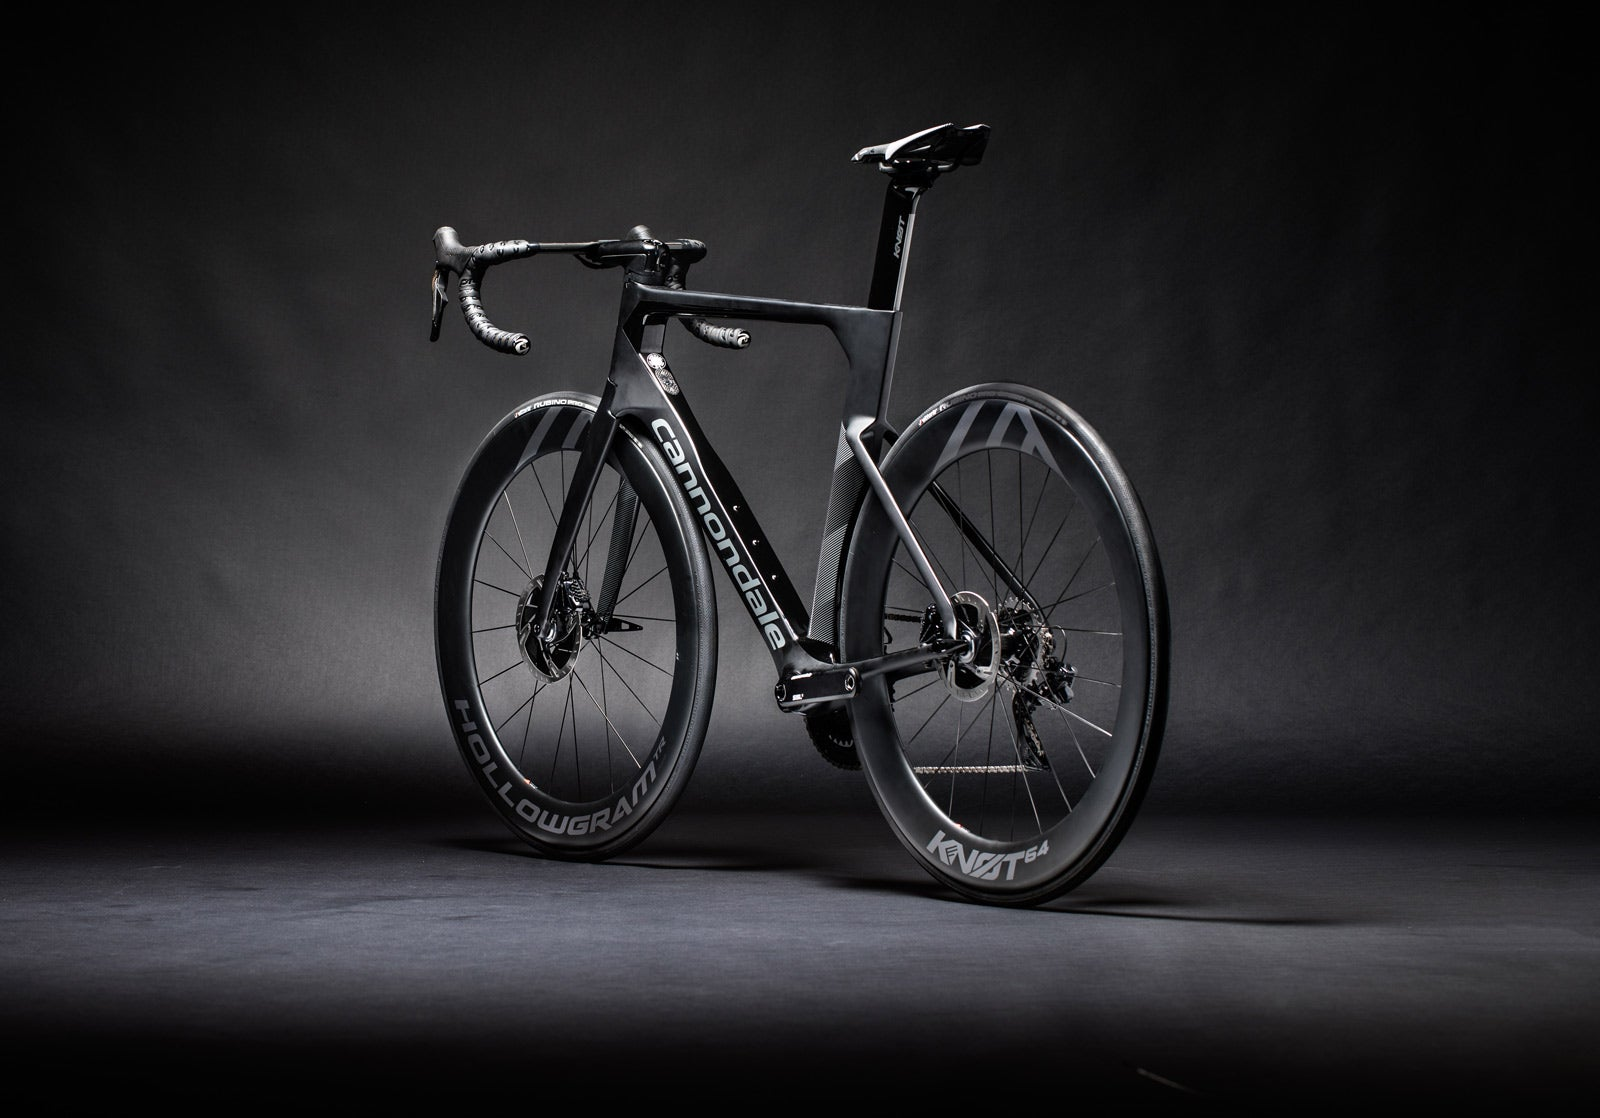 Cannondale Systemsix Fastest Road Bike Ever Peloton